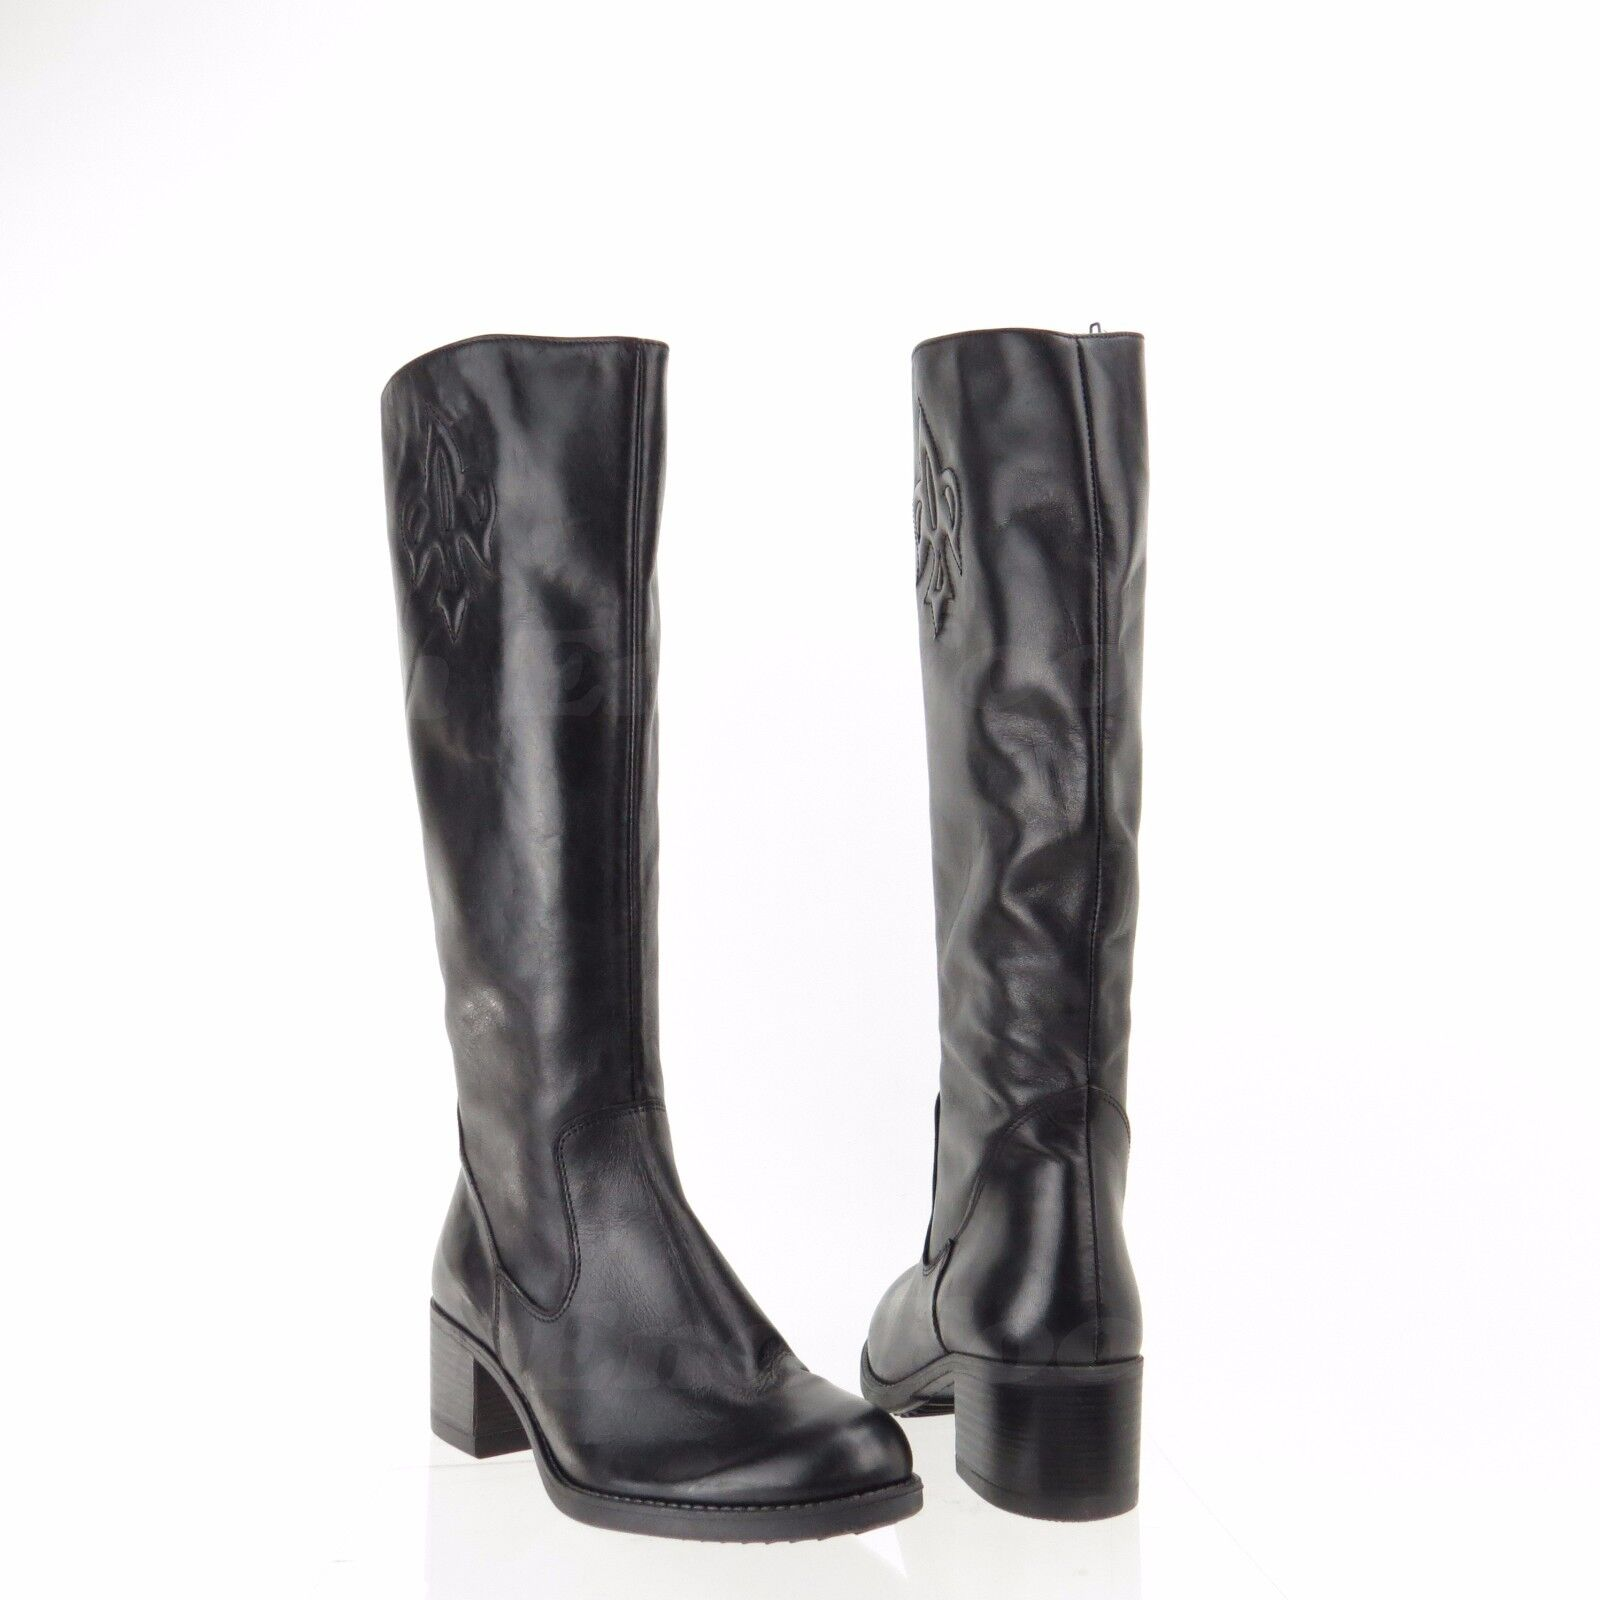 Summit Calverton Women's Shoes Black Leather Knee High Boots Sz NEW!